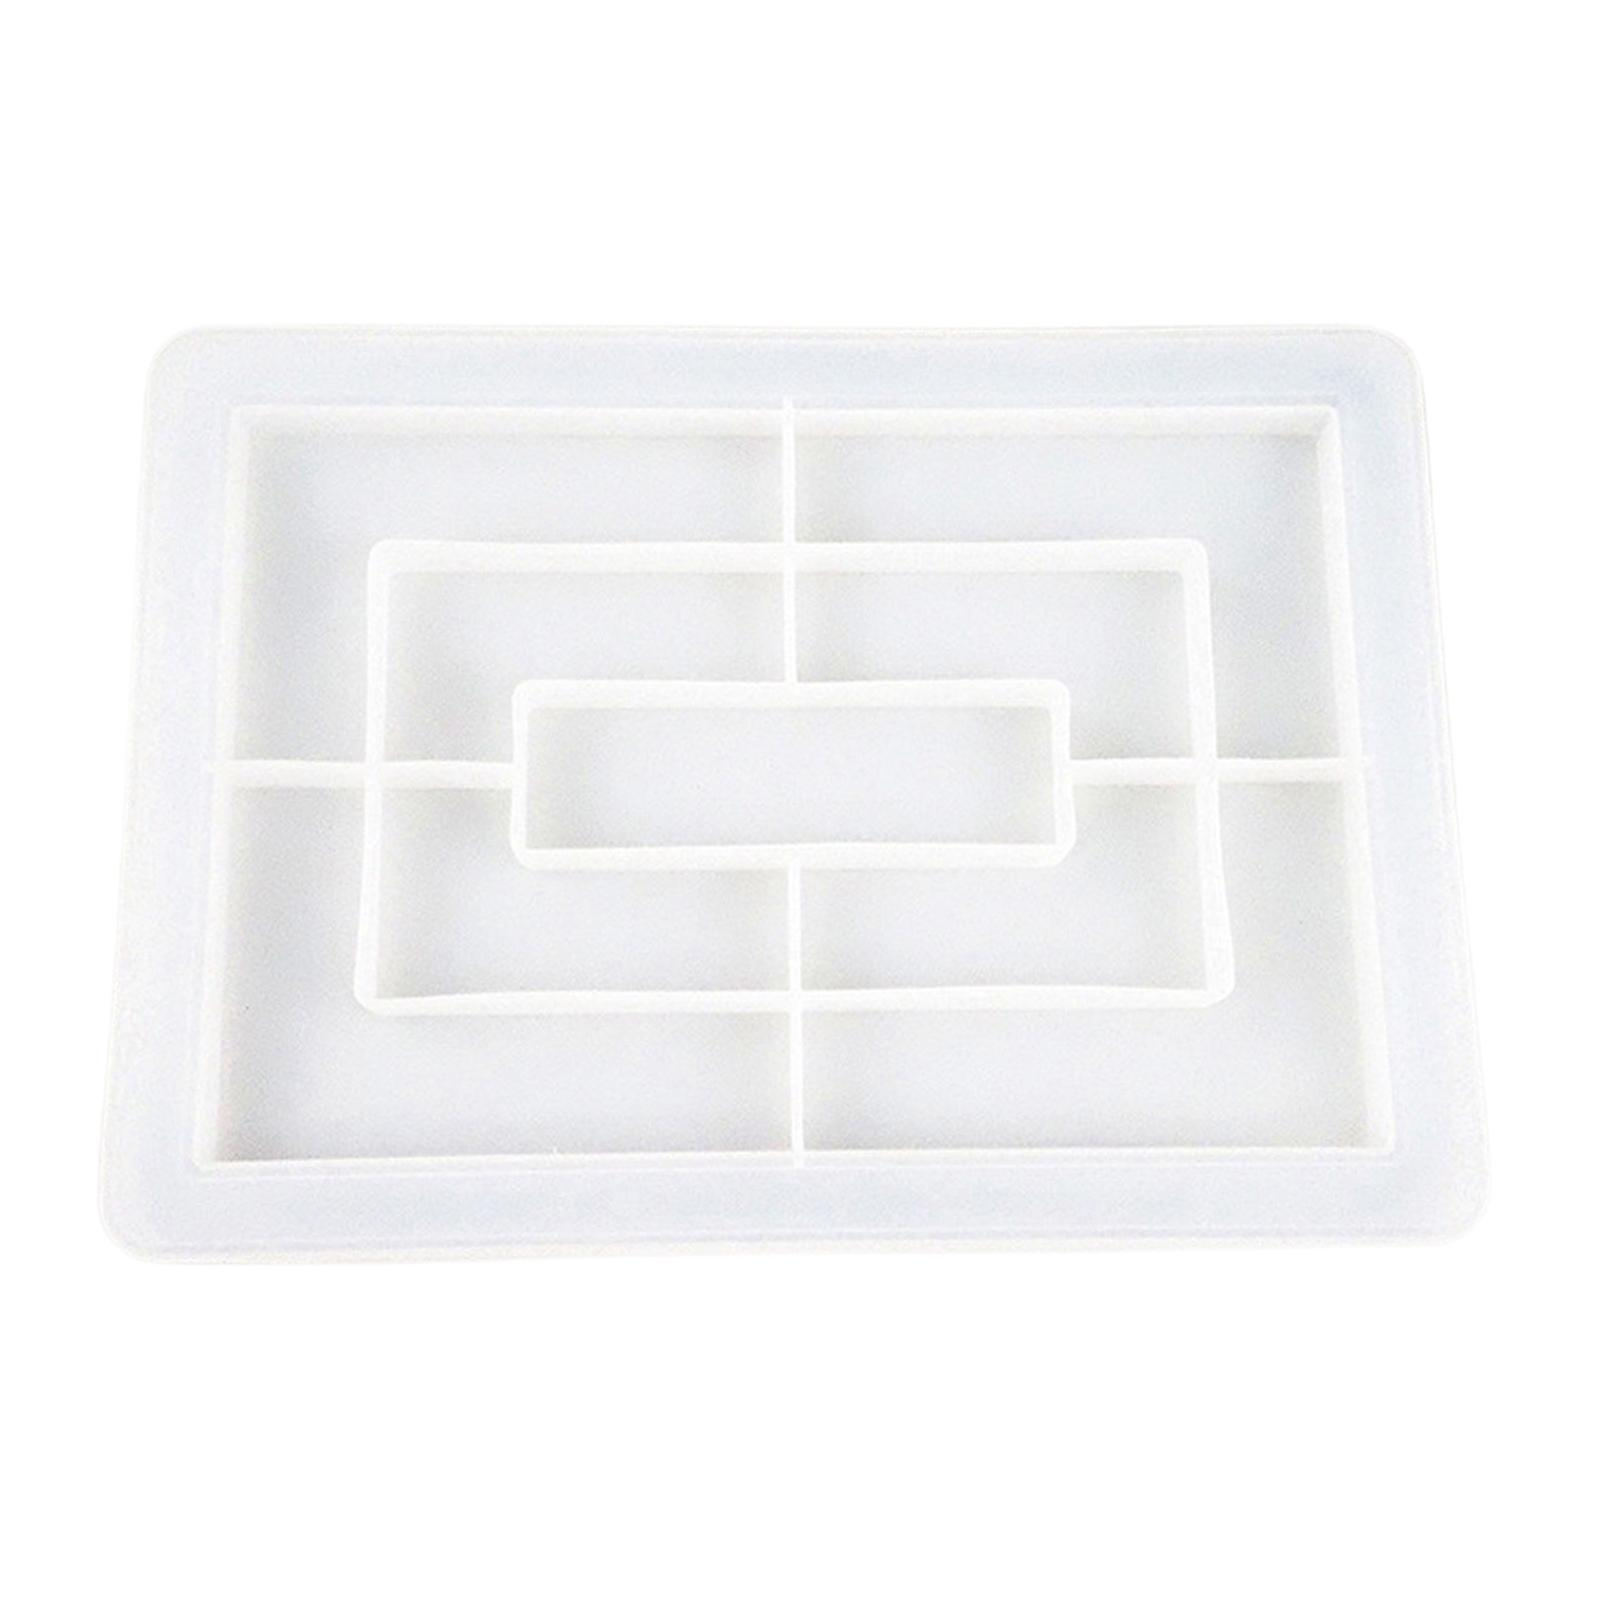 thumbnail 7 - DIY-Flexible-Silicone-Tray-Mold-Epoxy-Resin-Casting-Mould-Jewelry-Coaster-Crafts